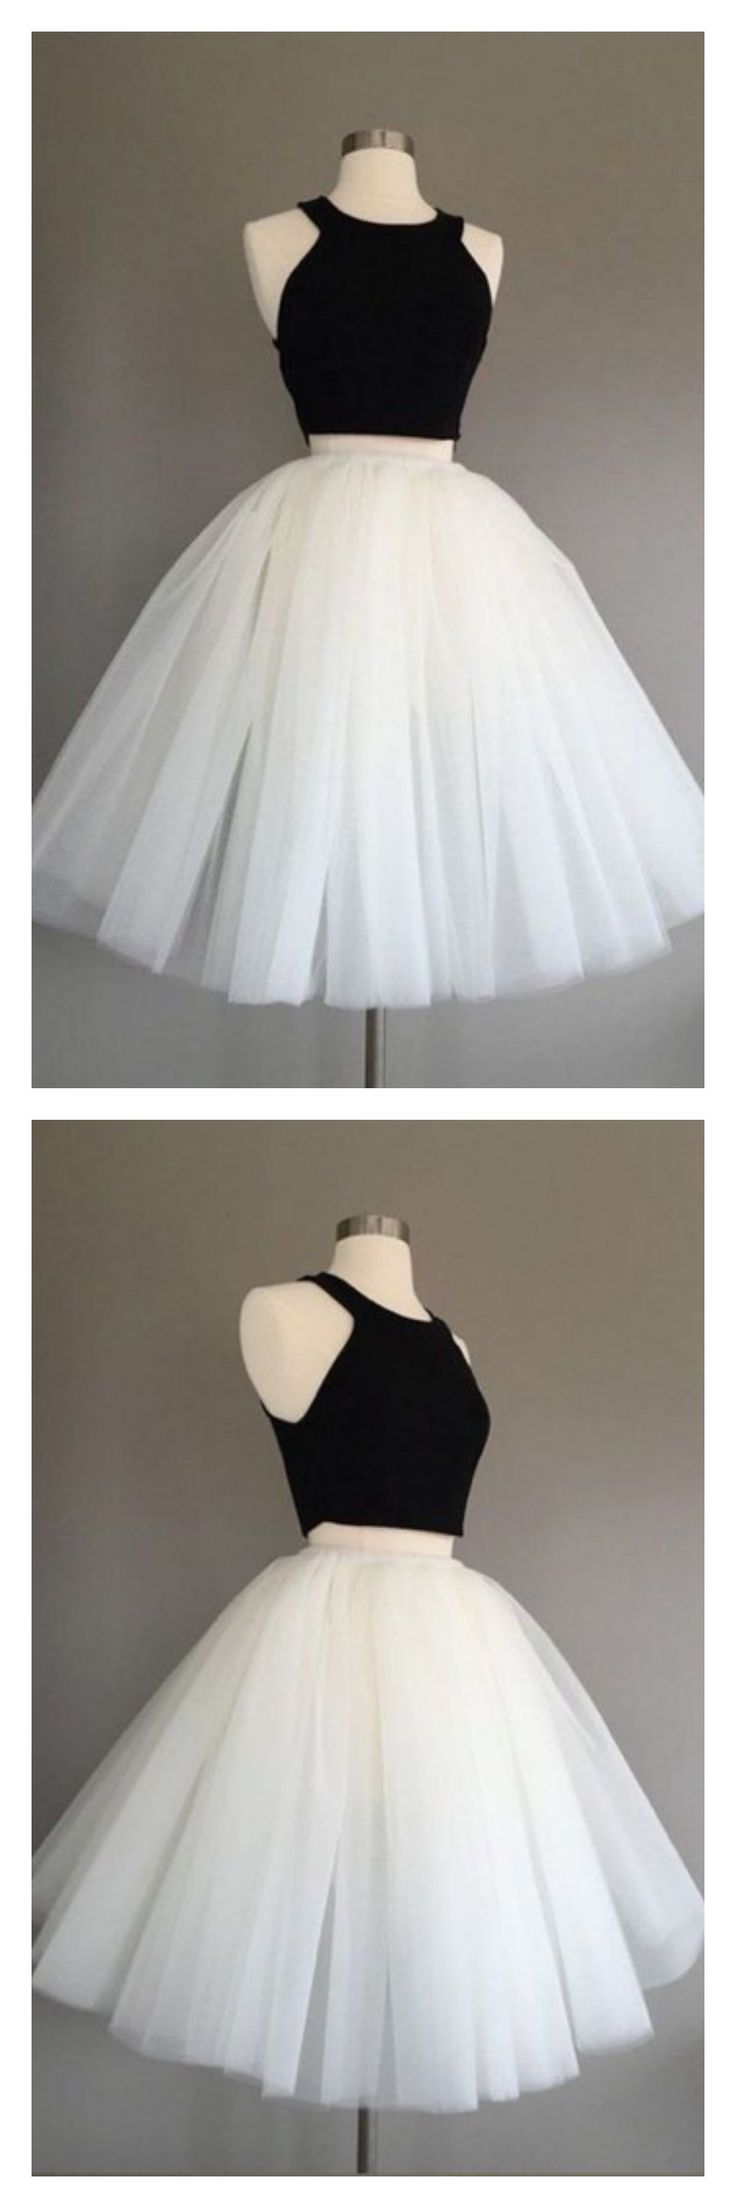 black and white  homecoming dresses, 2k17 homecoming dresses,two pieces  homecoming dresses,knee length homecoming dresses, tulle  cocktail dresses, party dresses, graduation dresses,prom dresses #SIMIBridal #homecomingdresses